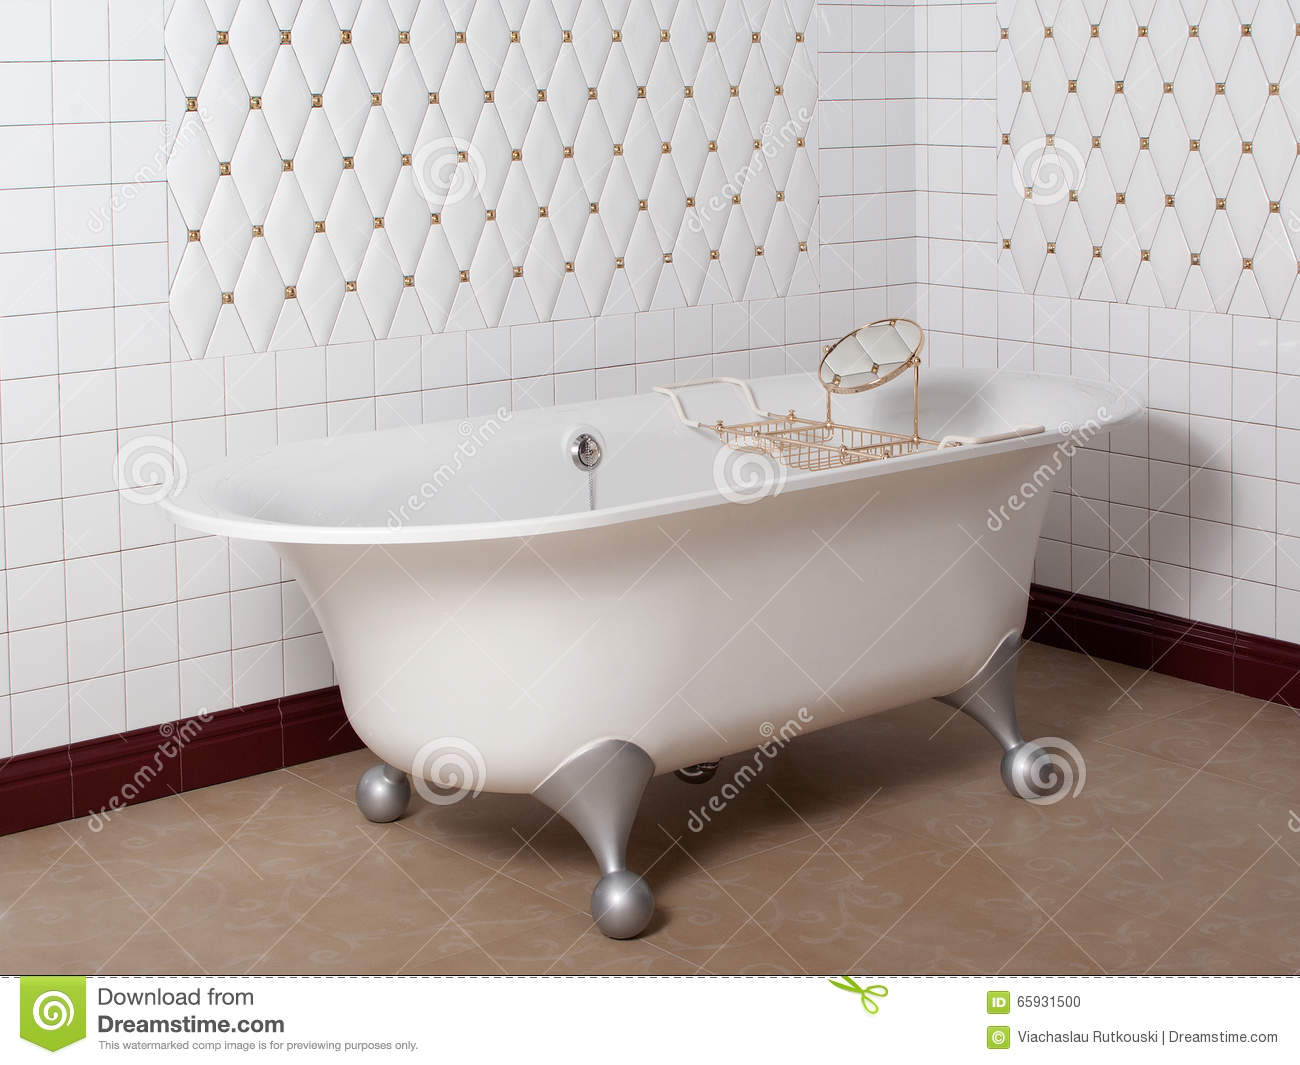 Piastrelle bagno bianche lucide best antares with for Piastrelle bagno bianche lucide